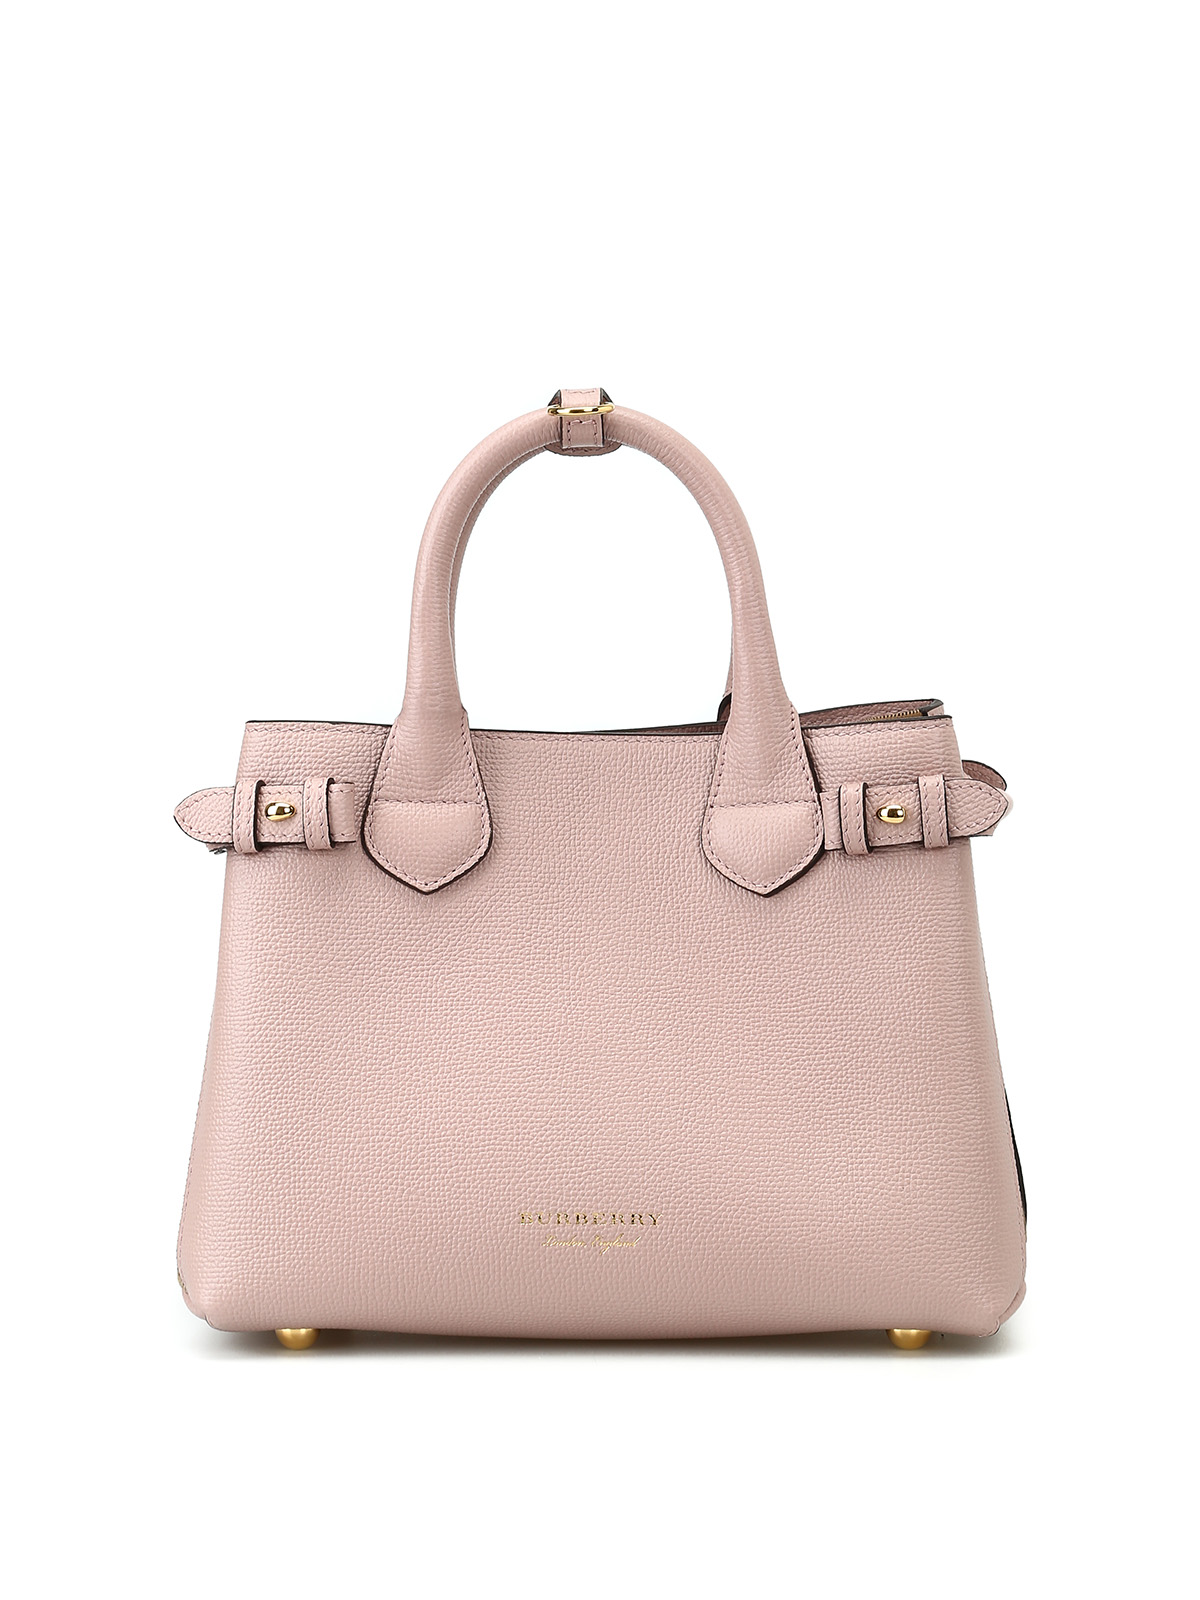 burberry トートバッグ the baby banner トートバッグ 4023701